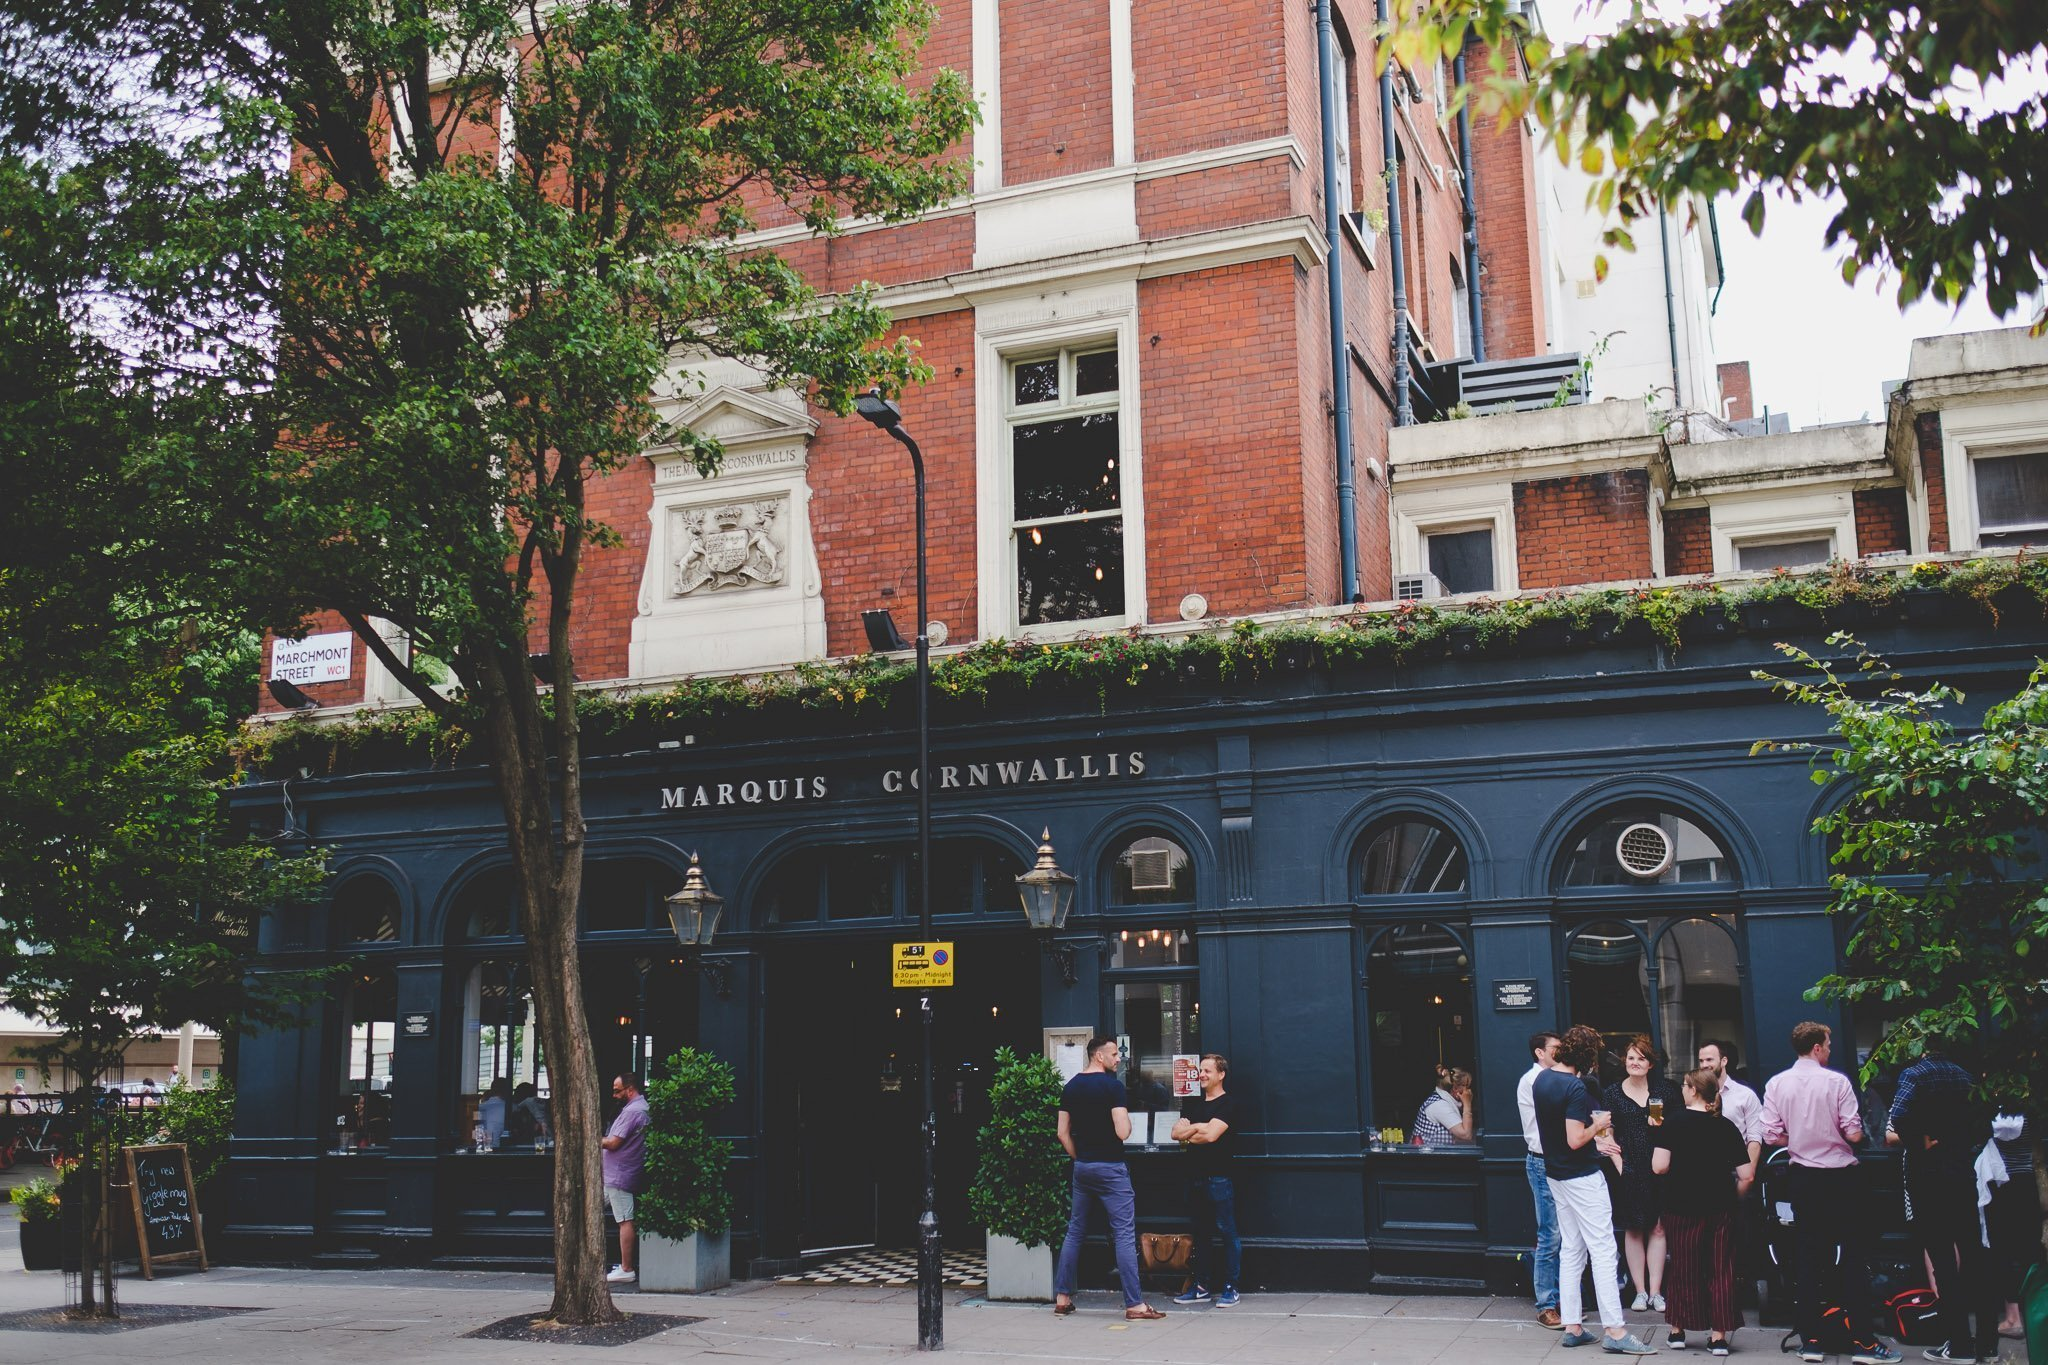 Outside of The Marquis Cornwallis Pub in Bloomsbury London